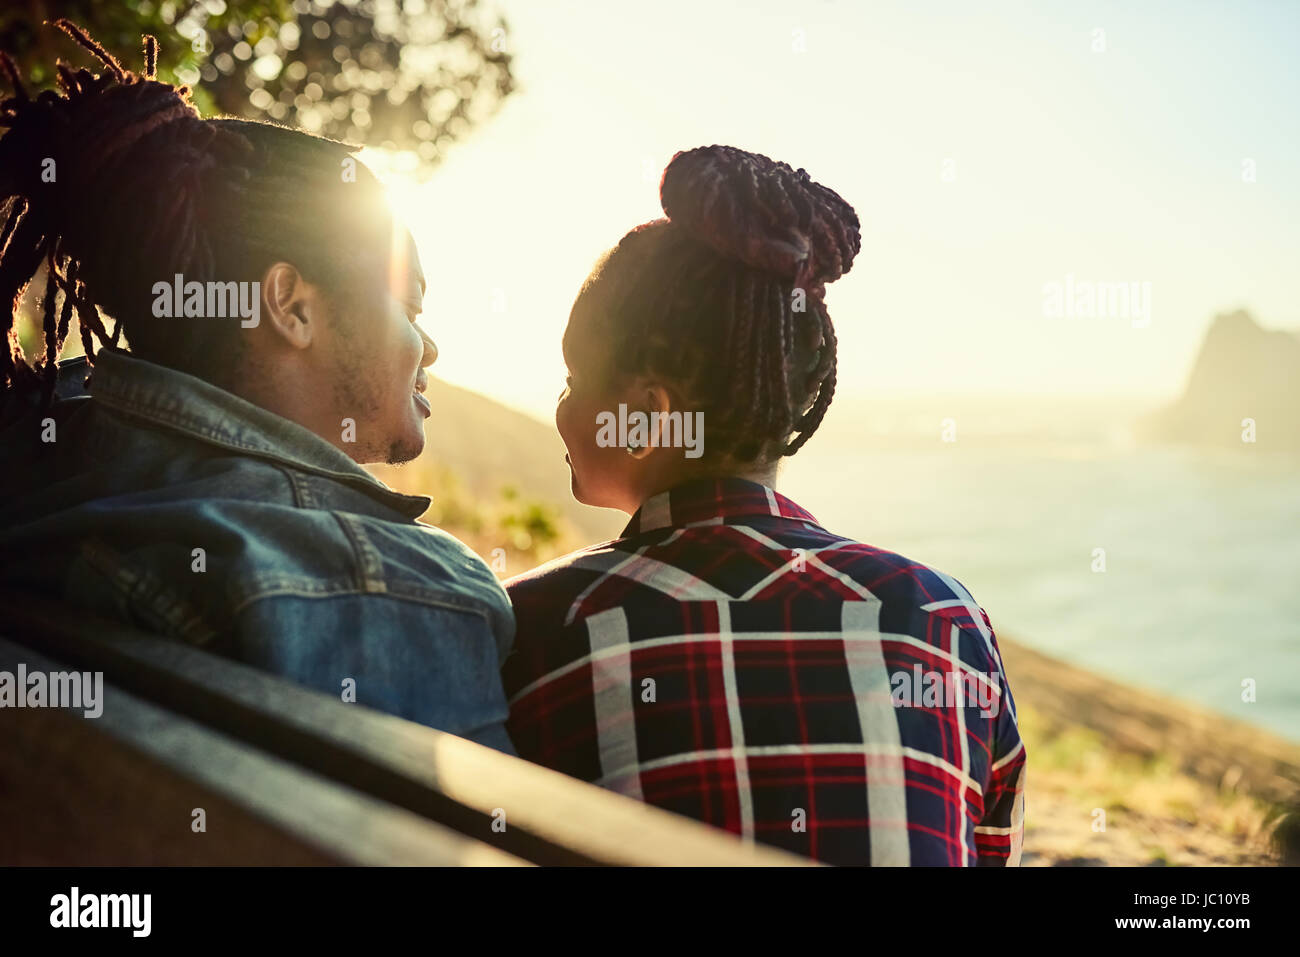 Couple of African descent sitting on a public viewpoint bench - Stock Image